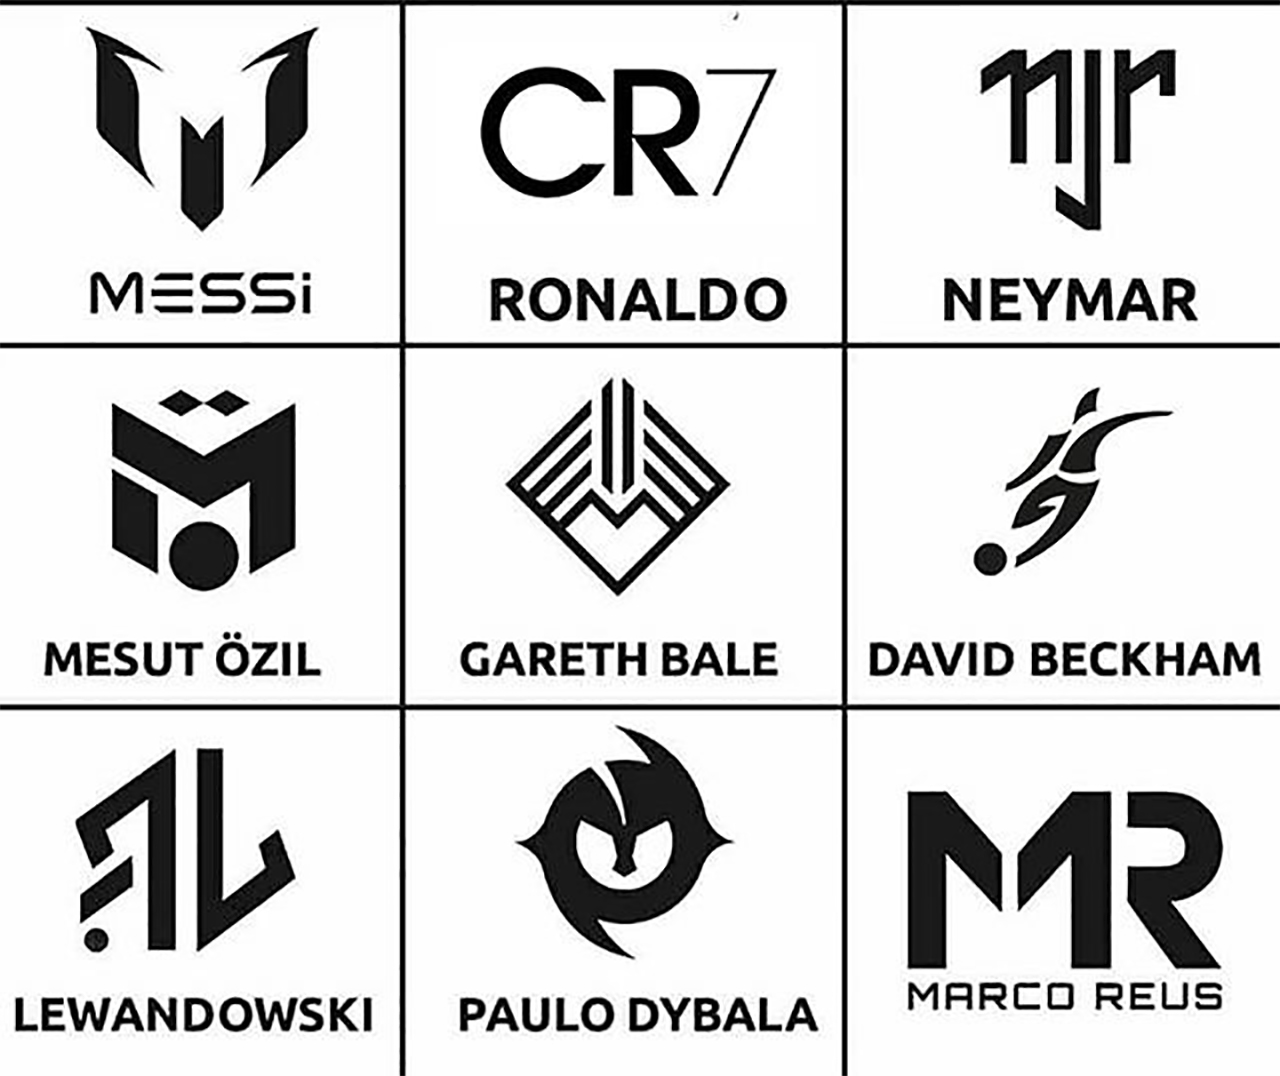 Today's Superstar Soccer Players Have Logos Too